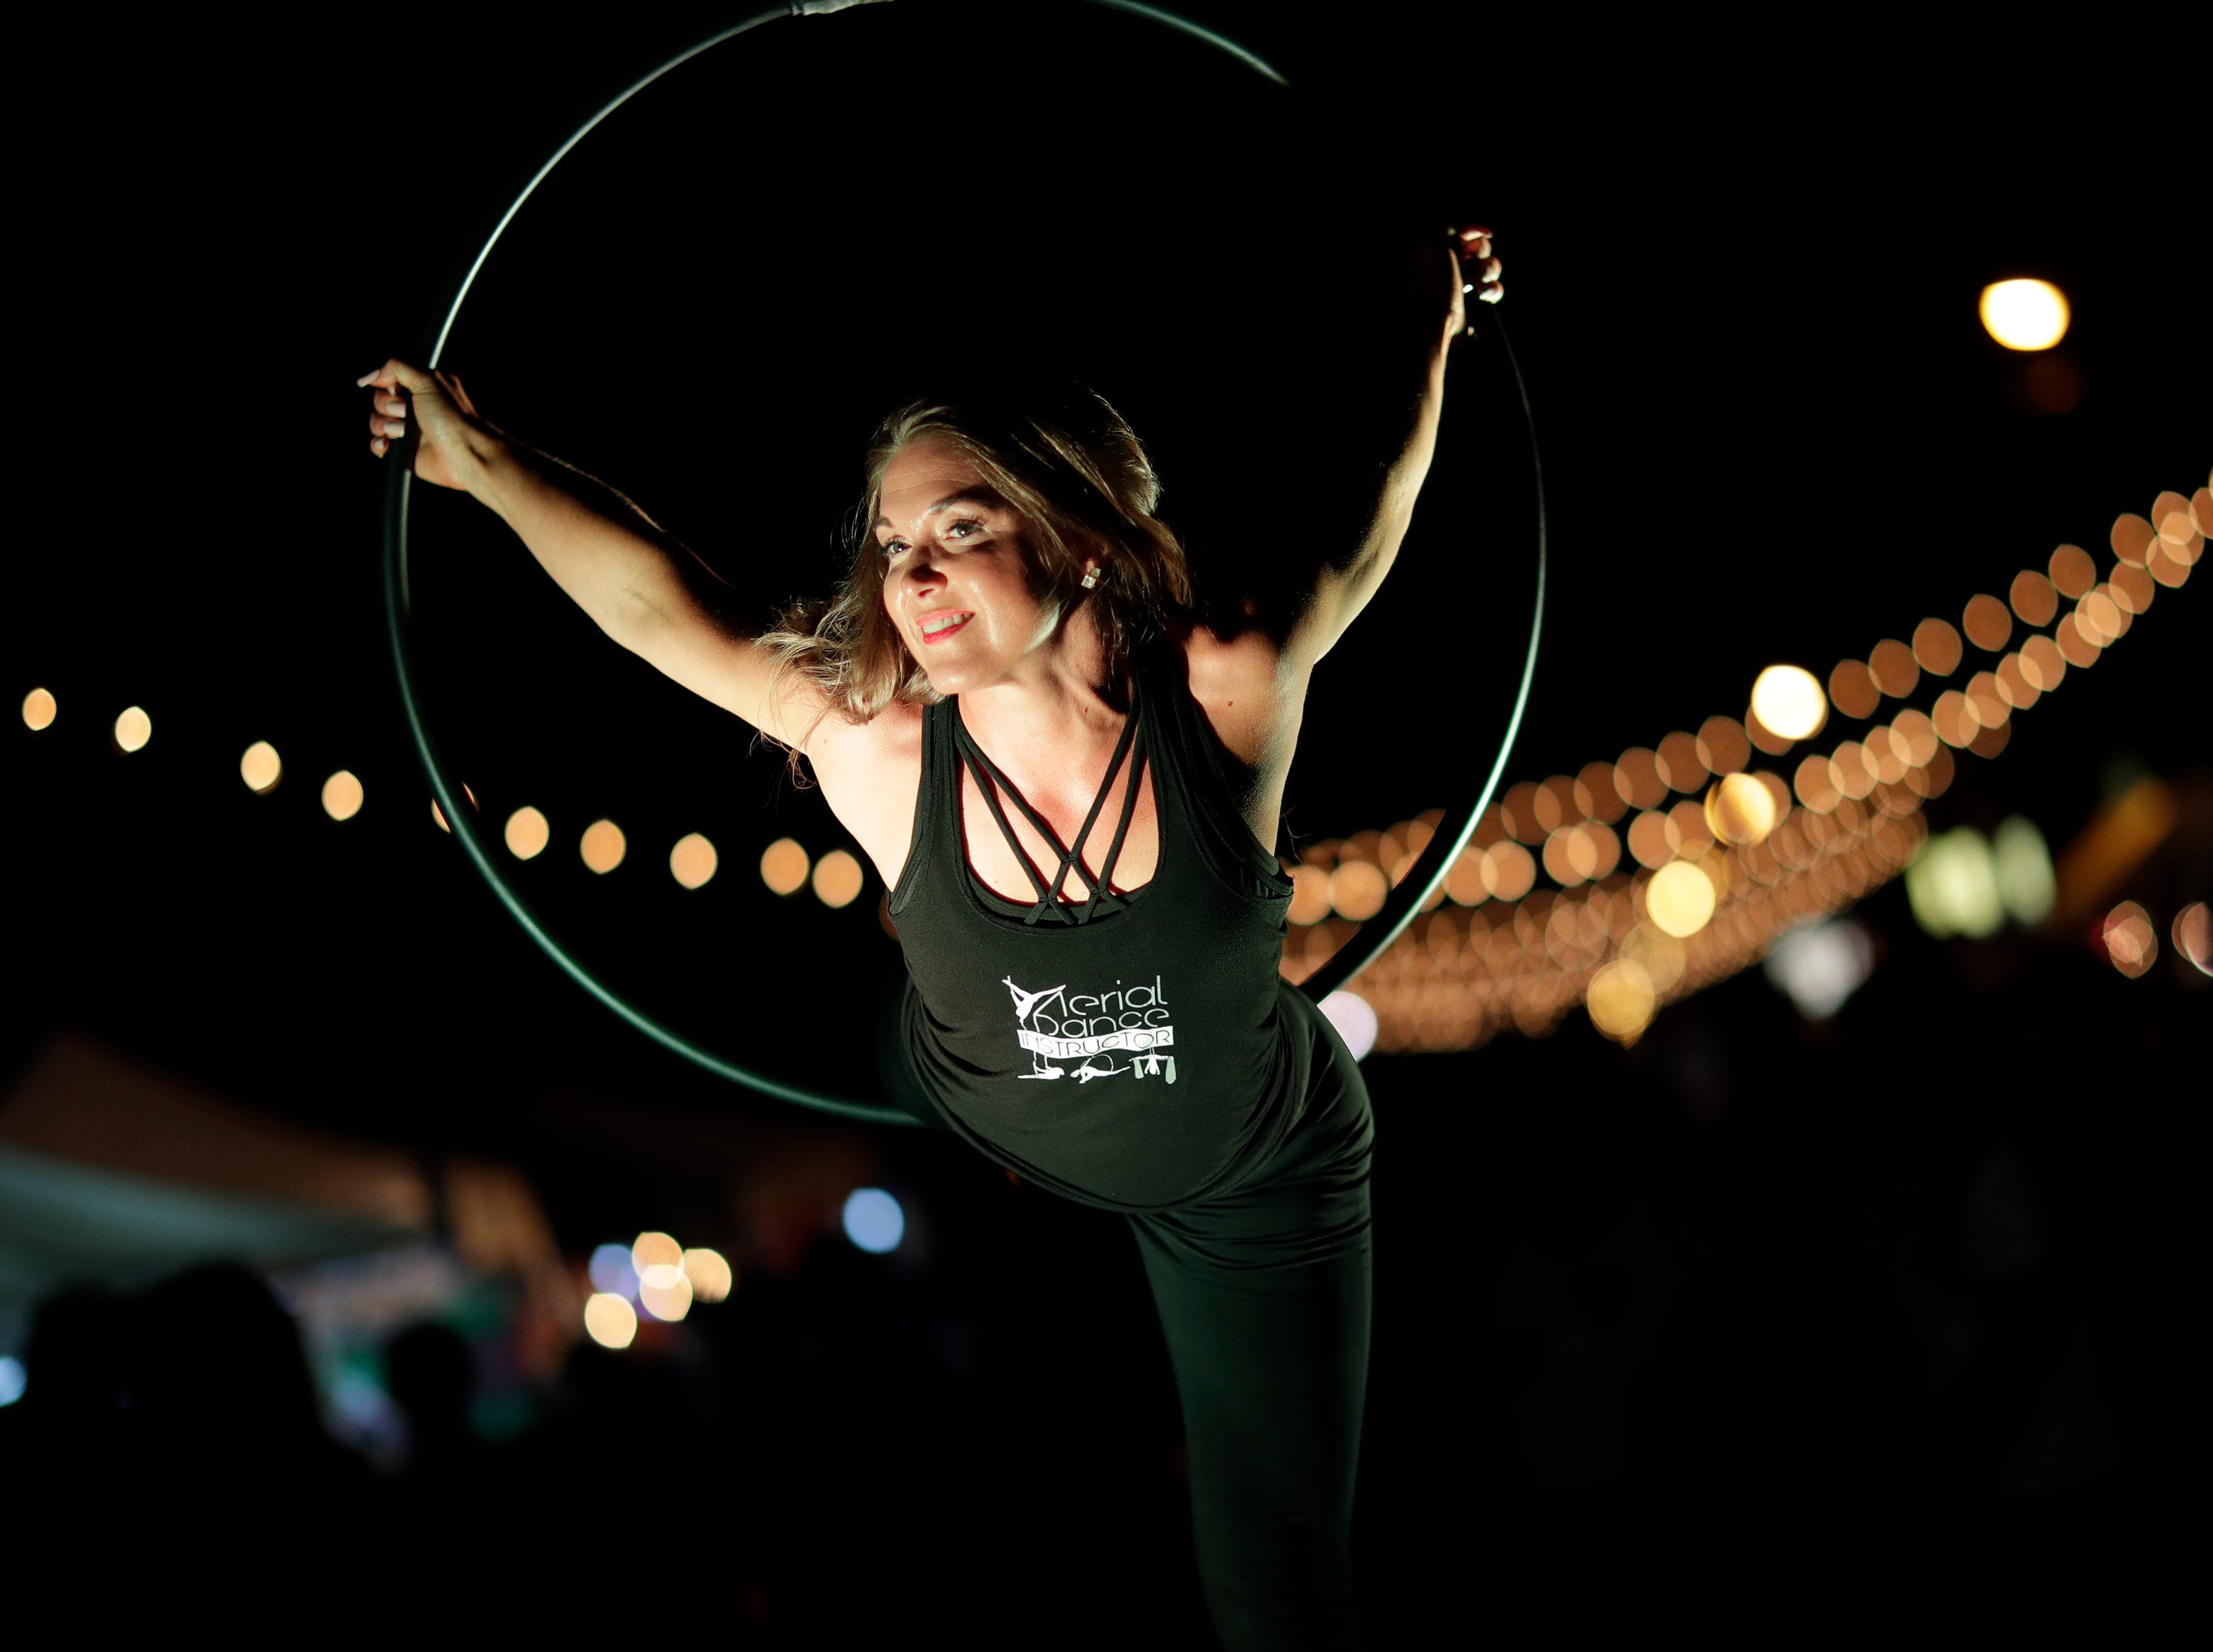 Lynn Stankowski of Appleton performs during Bazaar After Dark Thursday, July 19, 2018, in Neenah, Wis. The event is hosted Pulse Young Professionals Network at the Fox Cities Chamber. Stankowski is with Aerial Dance Pole Excercise.